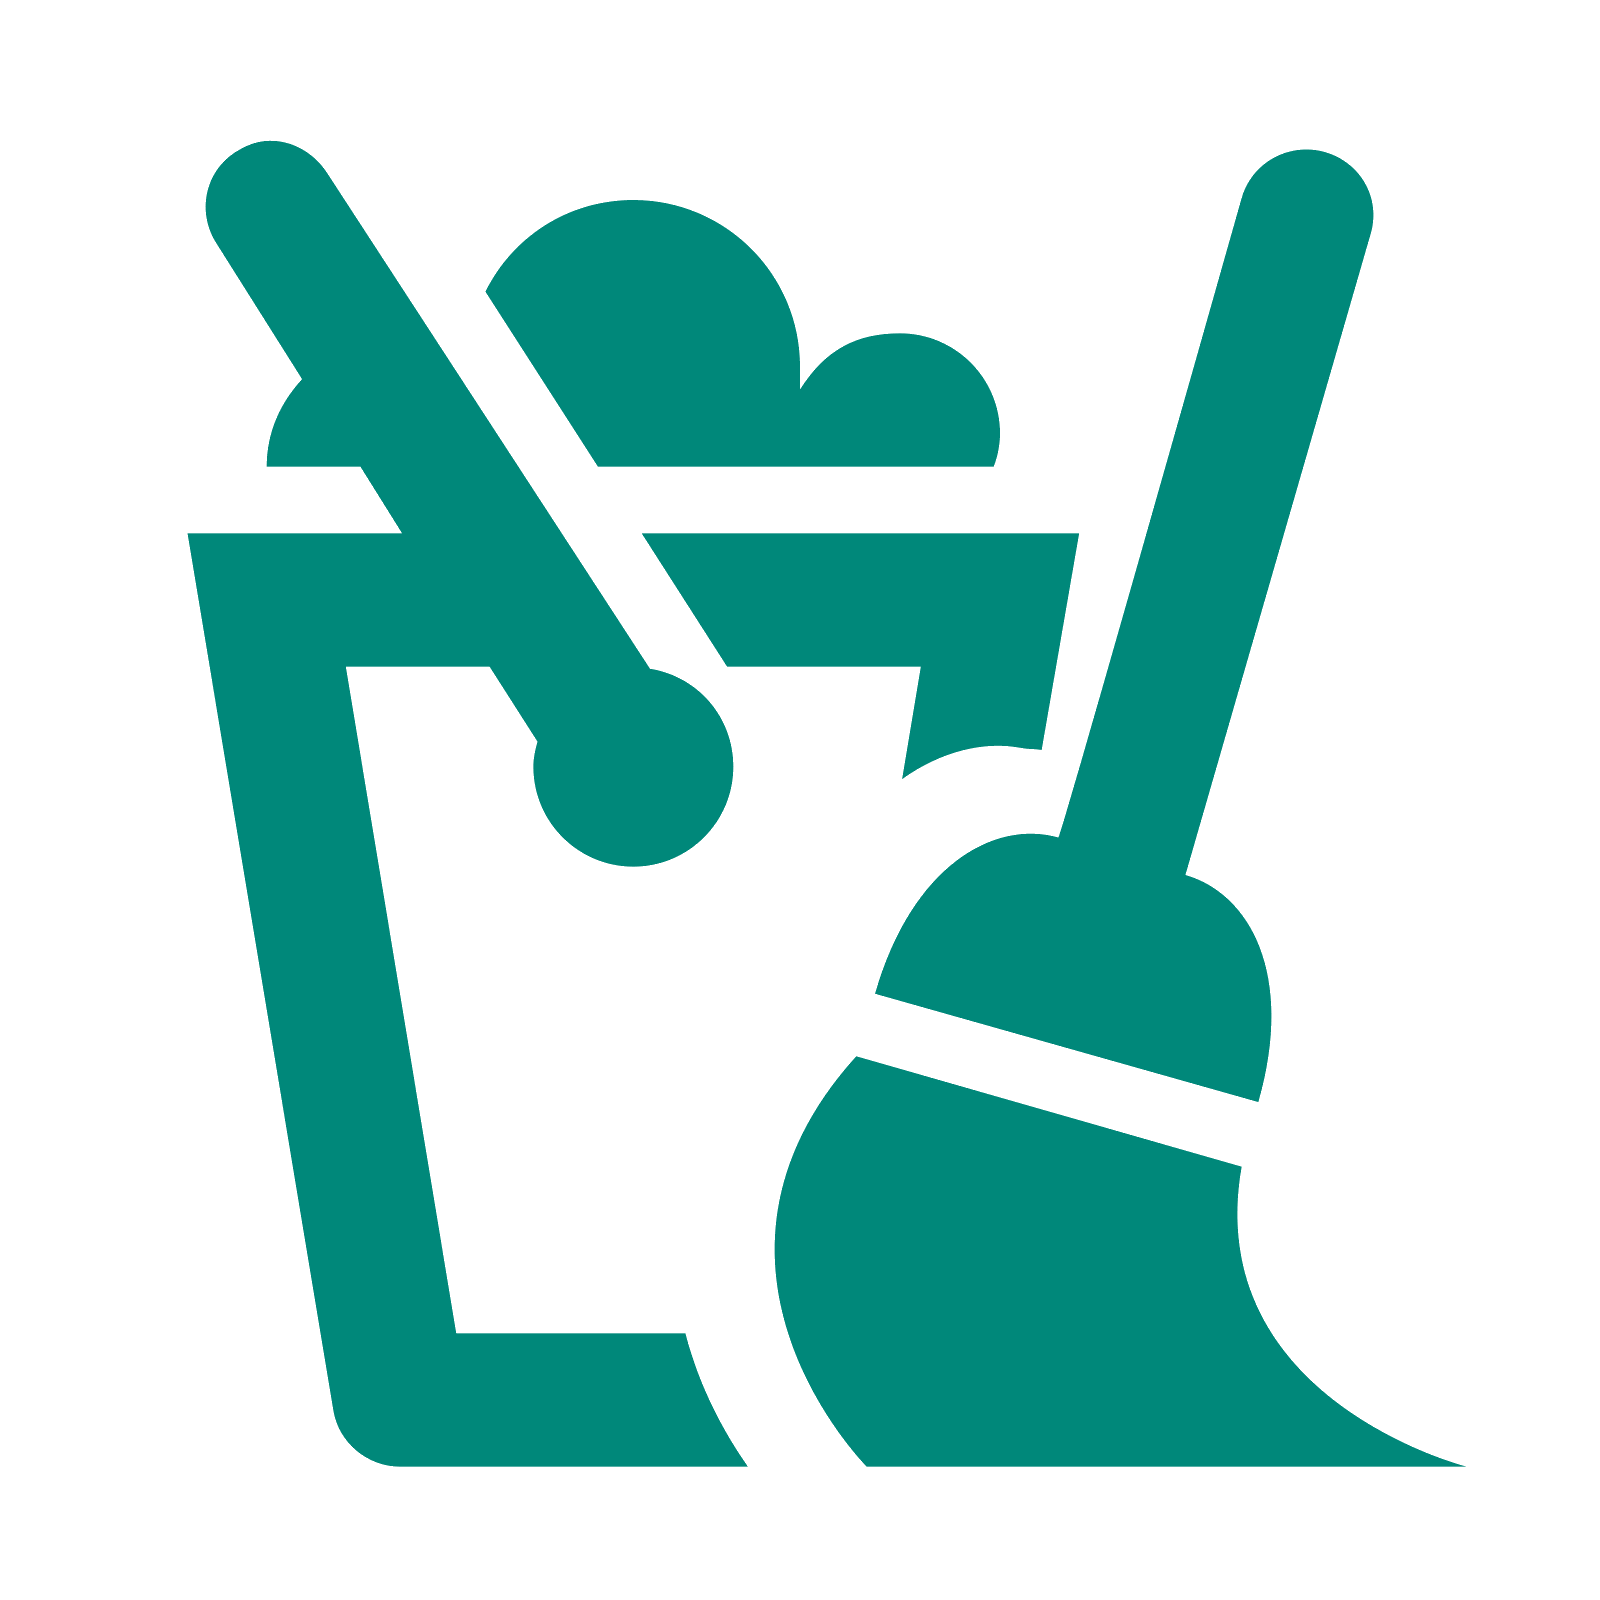 Housekeeping clipart clean hand. Computer icons cleaning maid